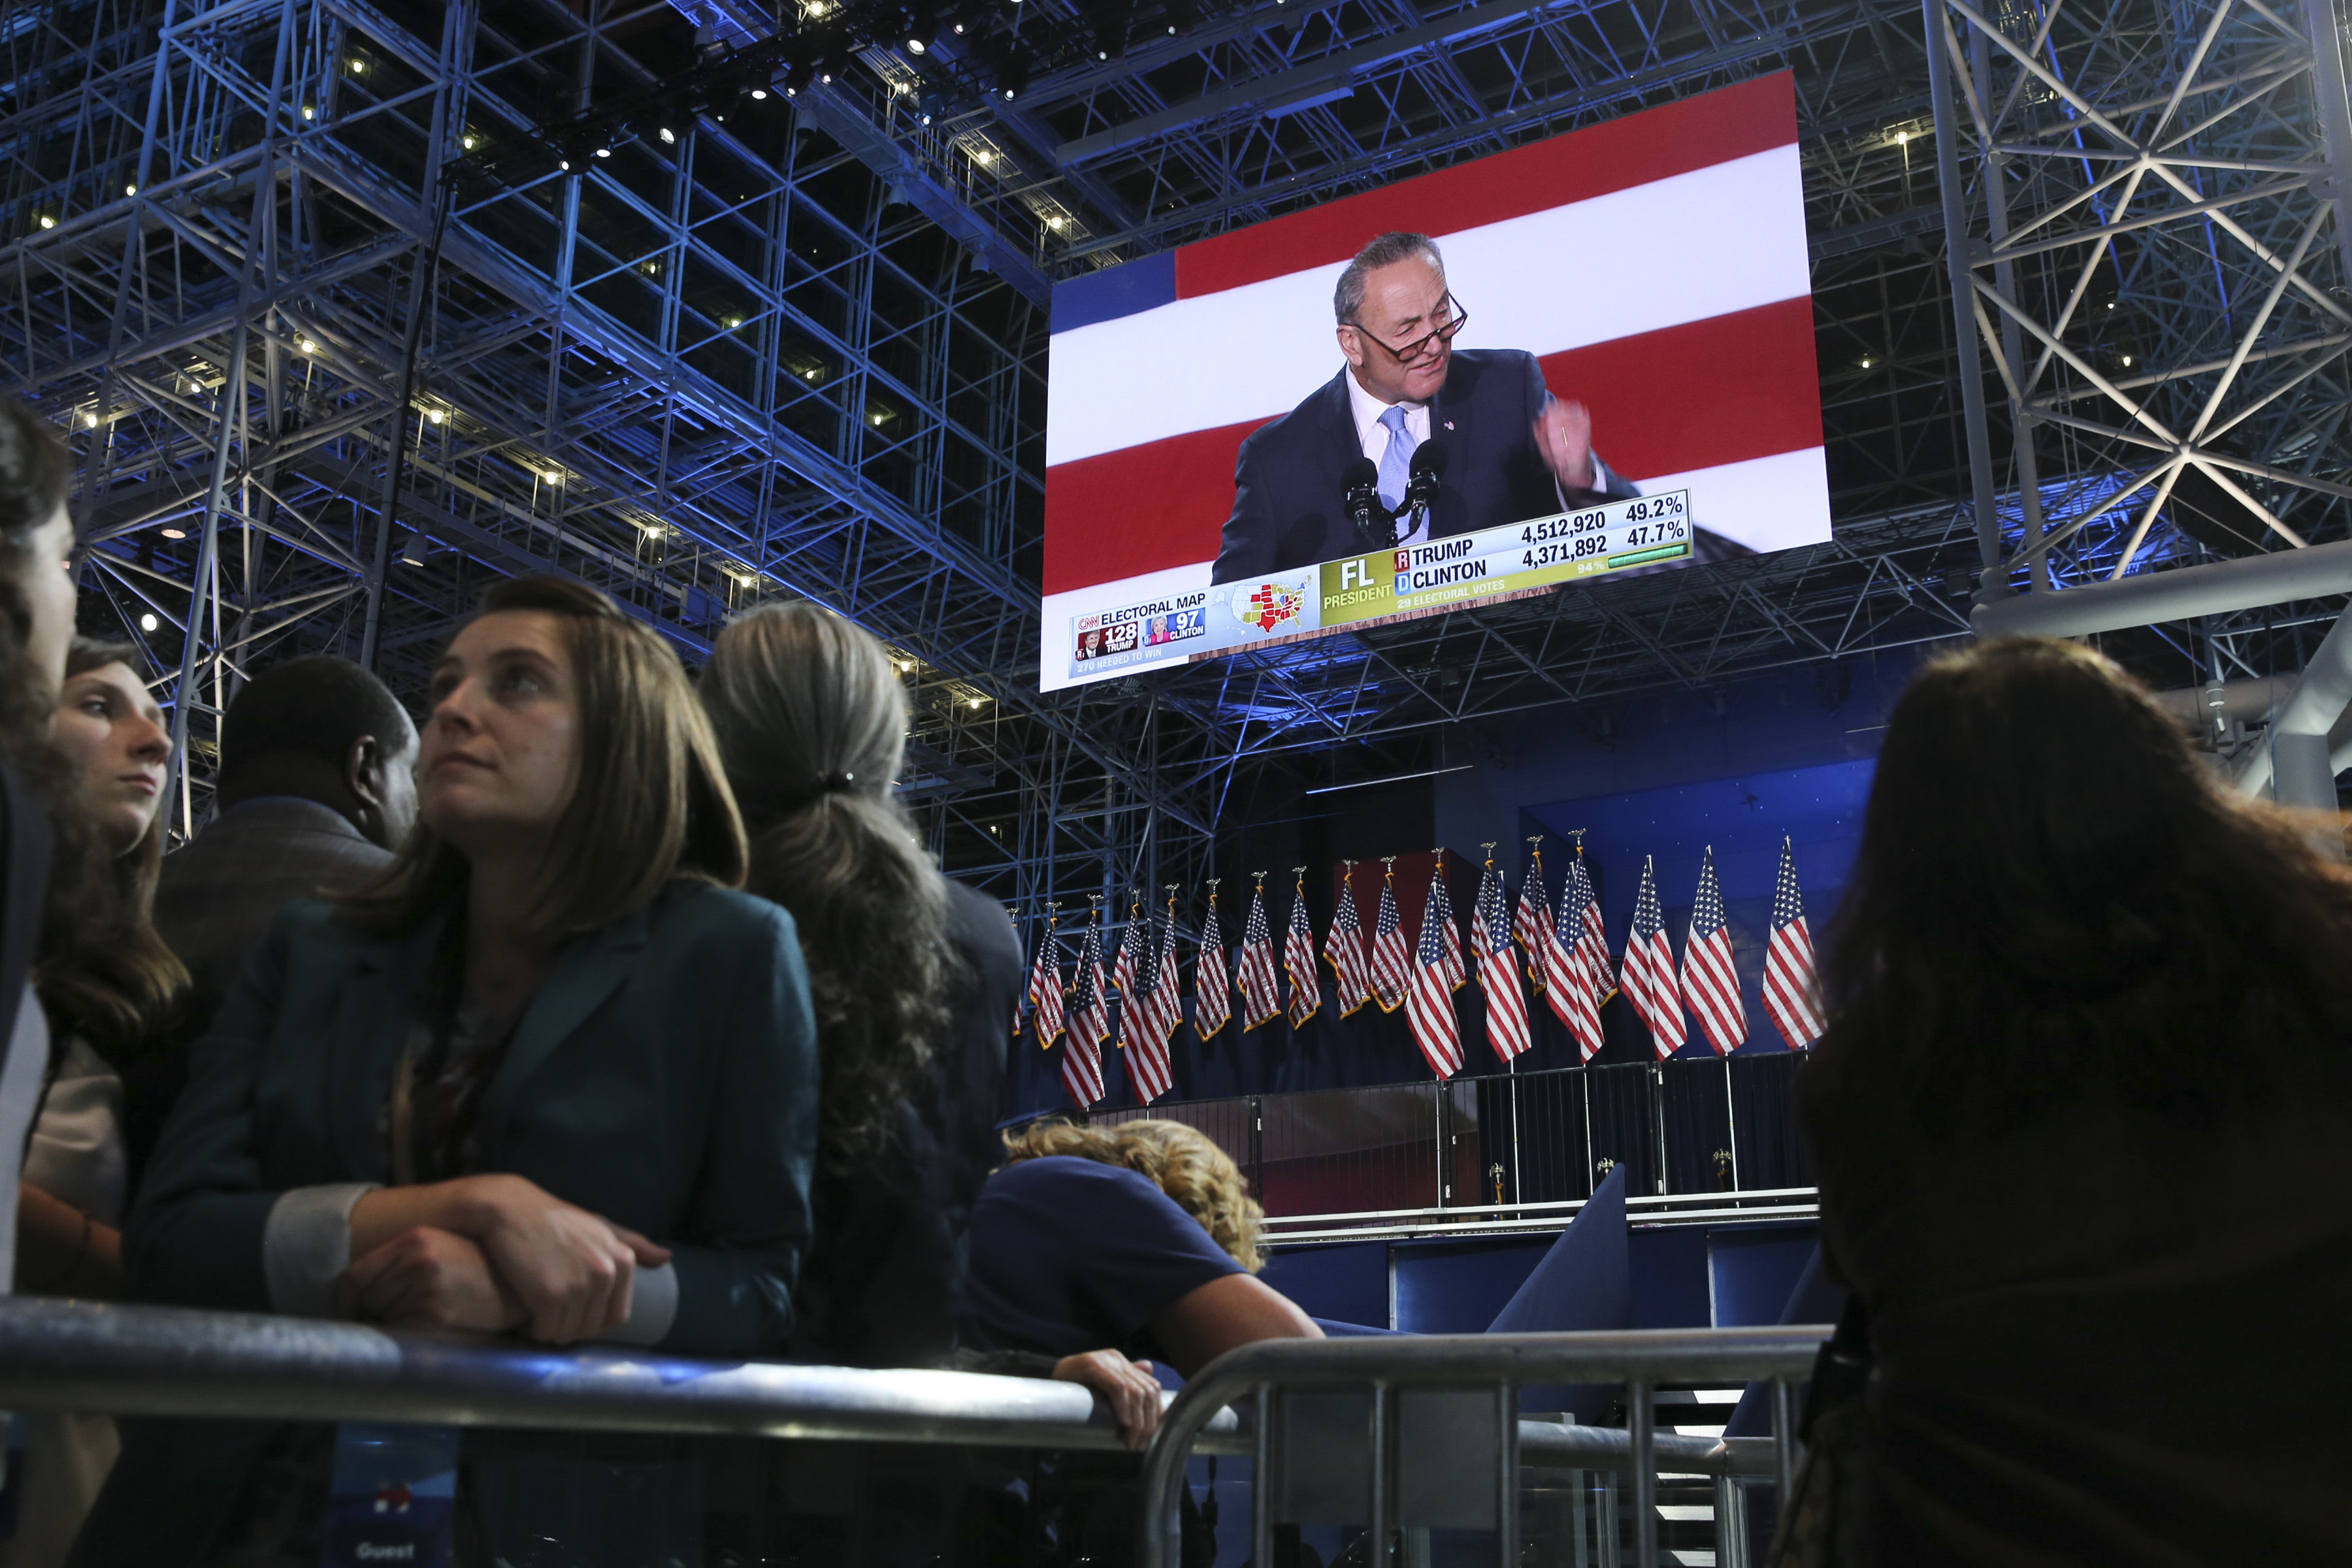 A video of Sen. Chuck Schumer plays during Hillary Clinton's election night event at the Javits Center in New York on Nov. 8. (Ruth Fremson/The New York Times)